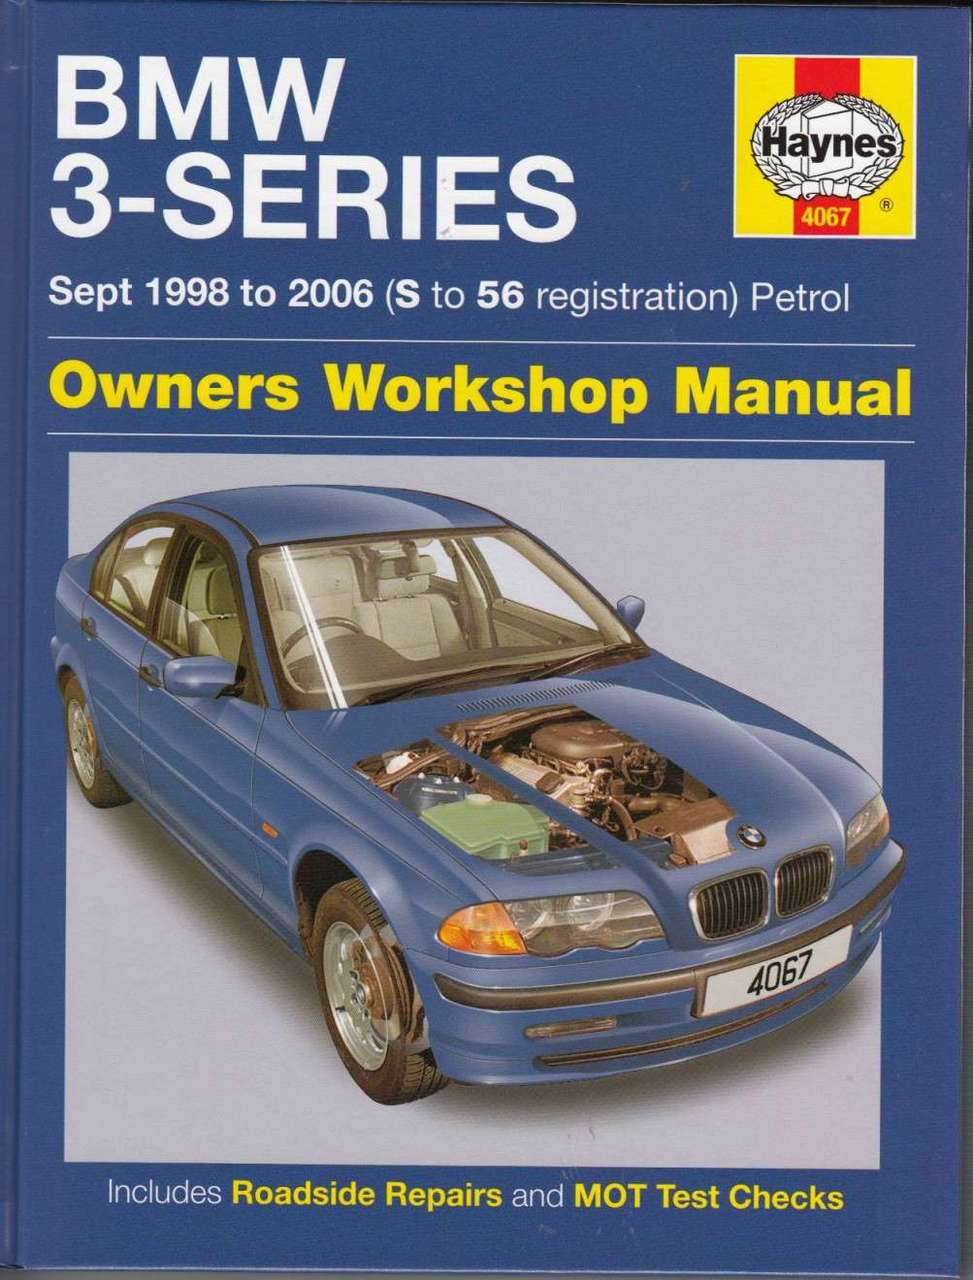 BMW 3-Series Petrol E46 1998 - 2006 Workshop Manual ...